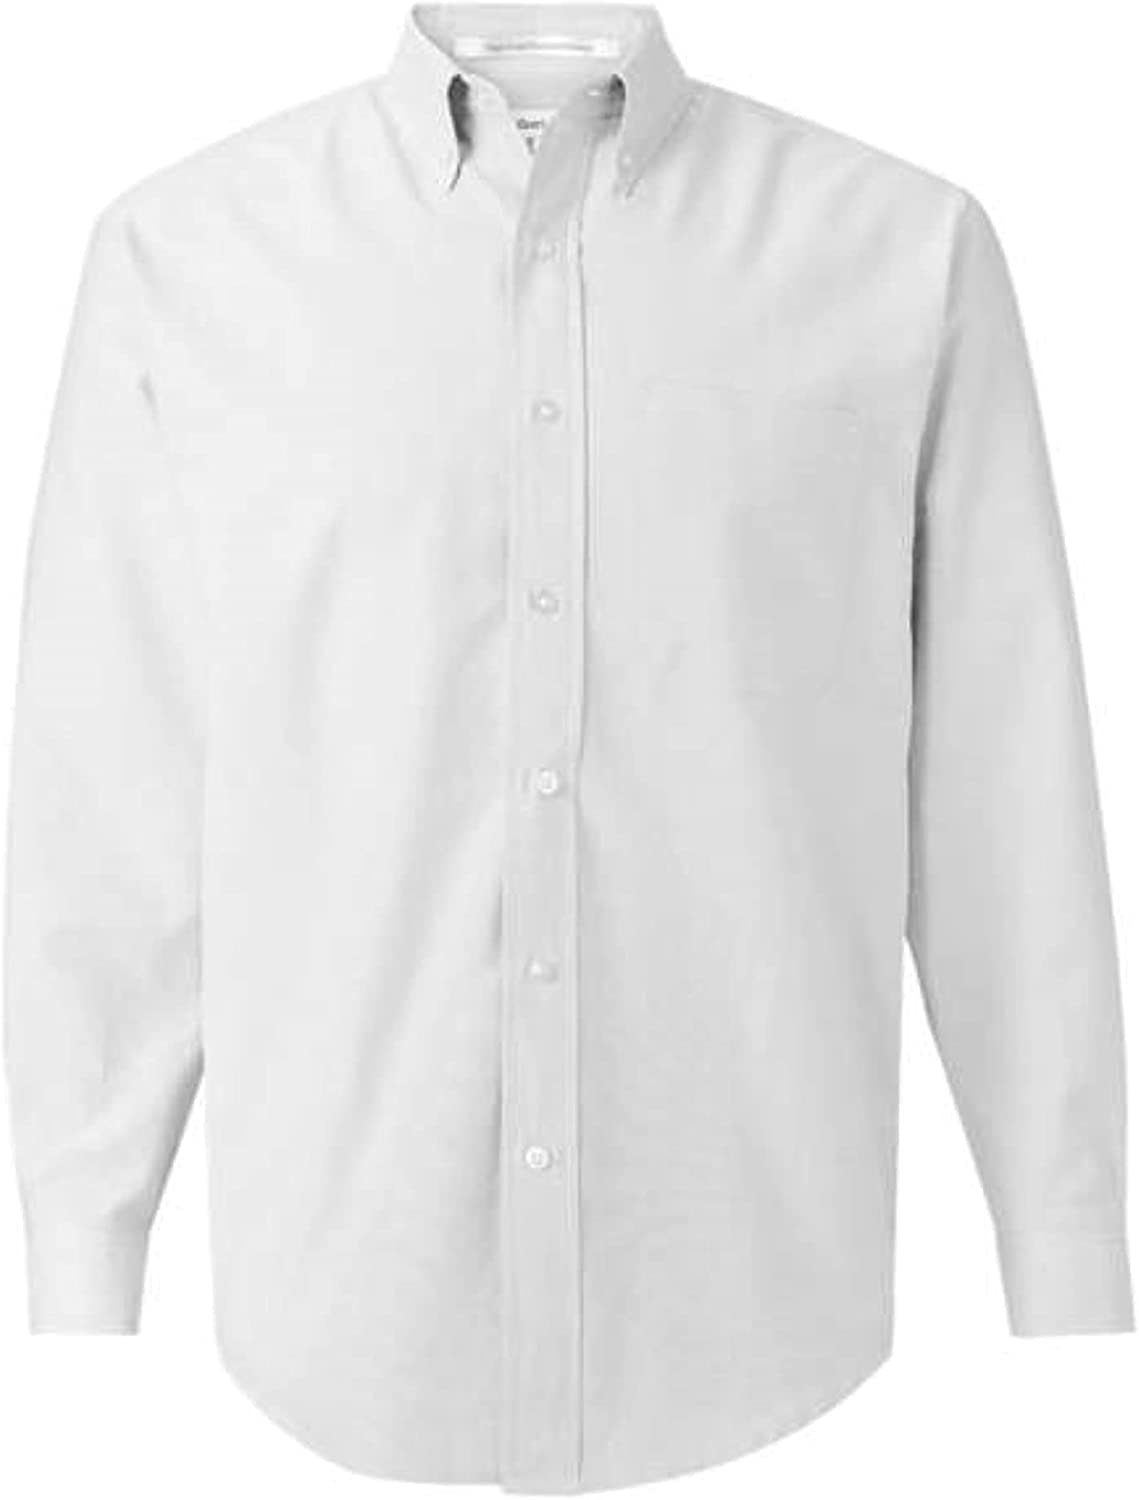 FeatherLite 7231 - Long Sleeve Oxford Shirt Tall Sizes